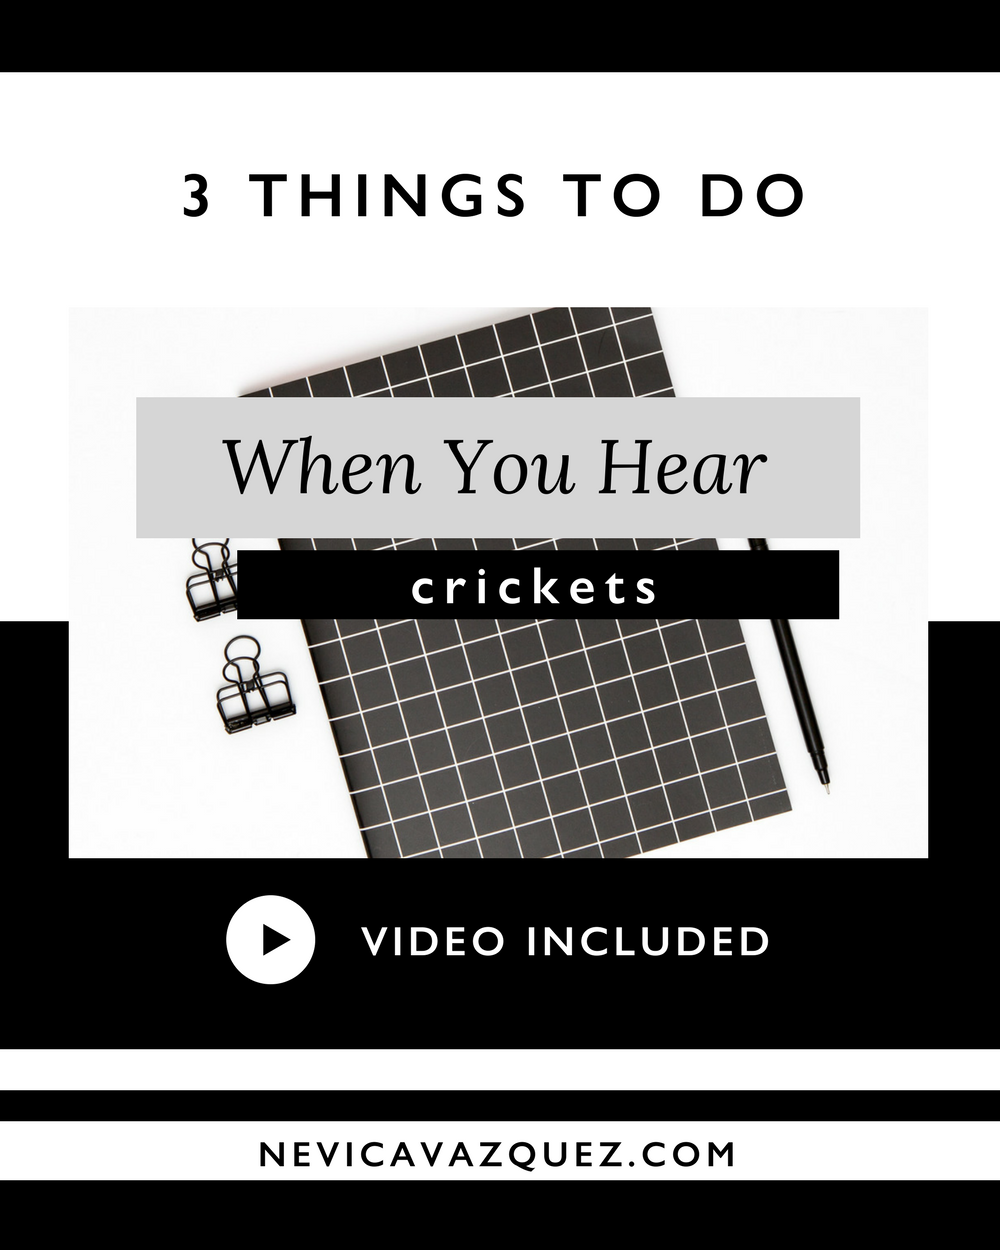 3 Things To Do When You Hear Crickets